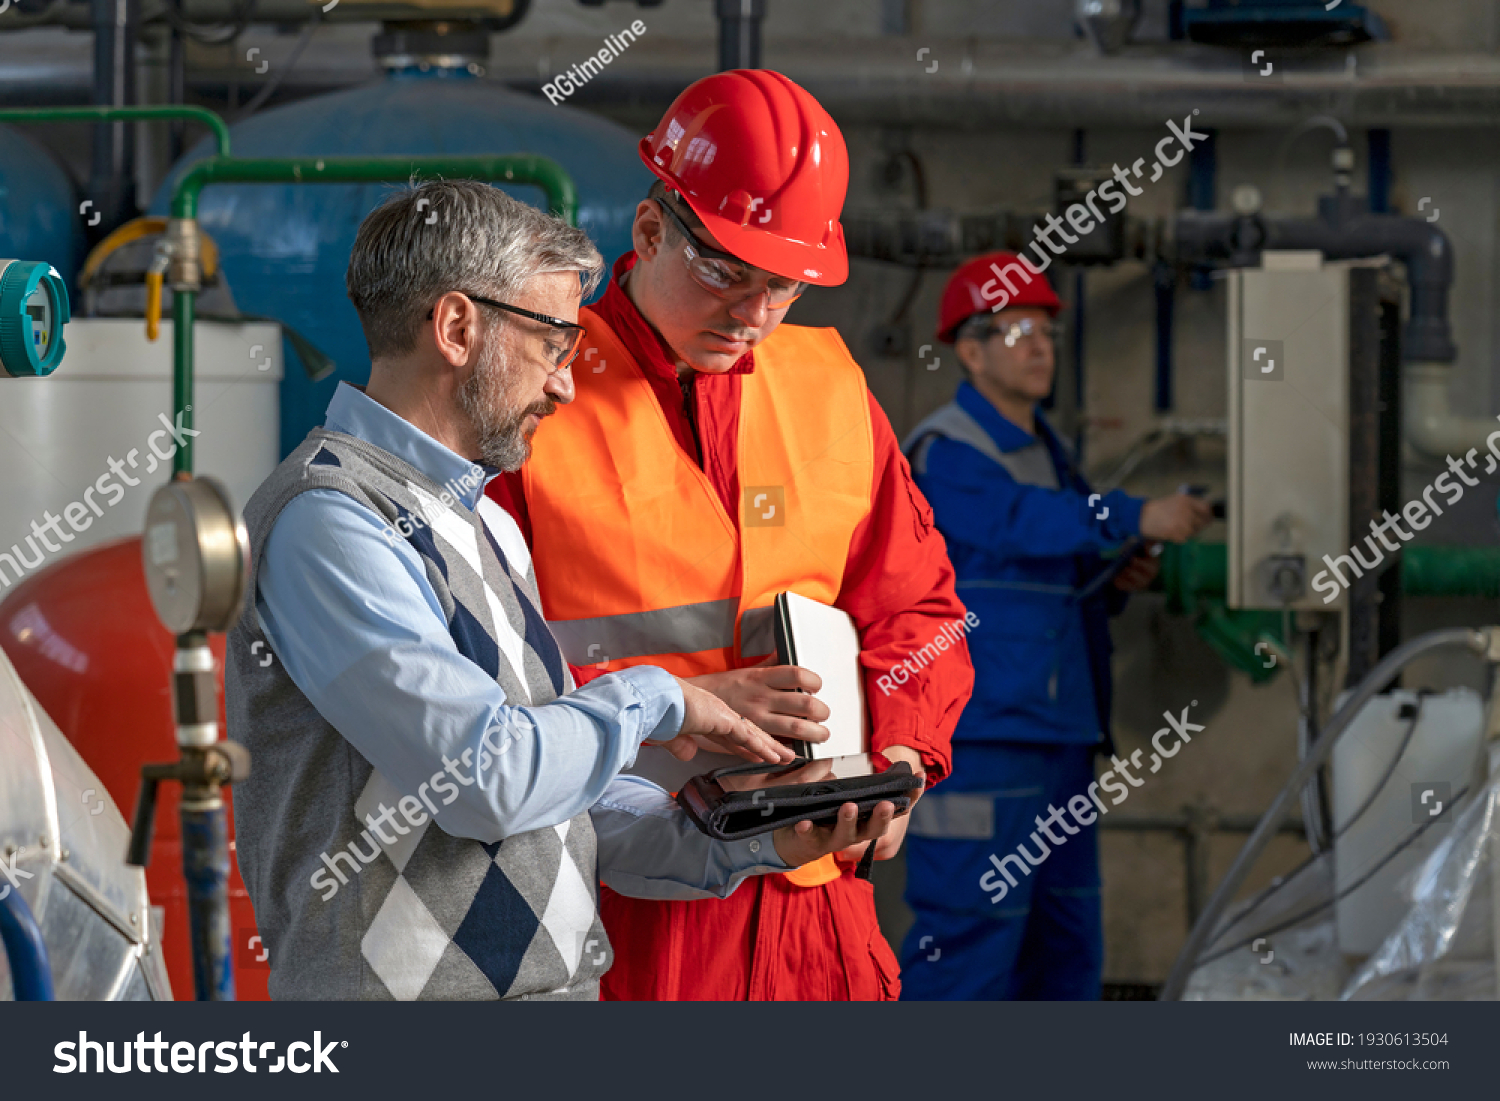 Technical Manager Using Digital Tablet and Discussing About Production Process with Power Plant Worker. District Heating Power Plant. Digital Technology and Teamwork Concept. Industry 4.0  #1930613504